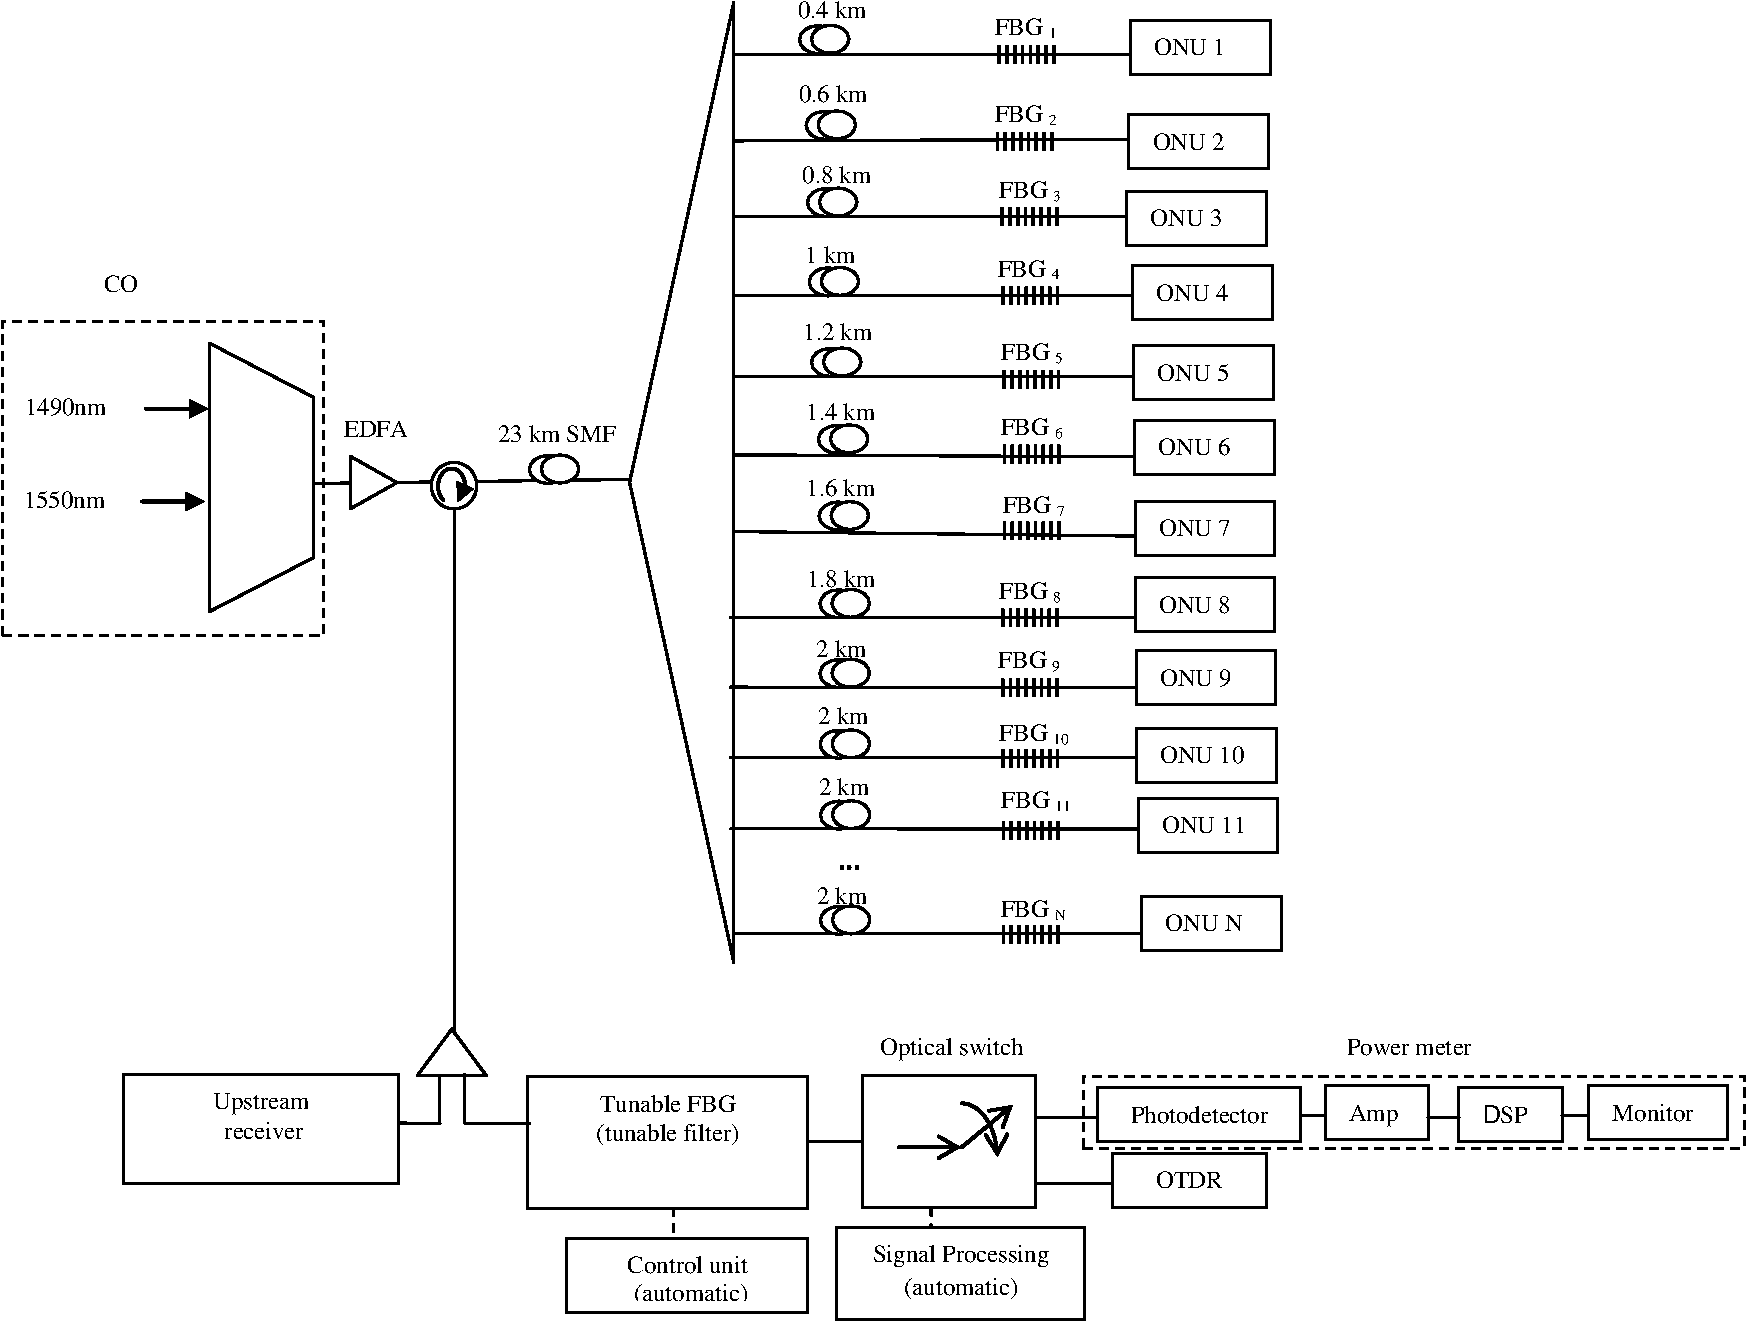 Real Time Monitoring And Fault Locating Using Amplified Spontaneous 20m Bandpass Filter Signalprocessing Circuit Diagram Seekic Block Of Division Multiplexing Tdm Pon System Smf Is The Single Mode Fiber Onu Optical Network Unit